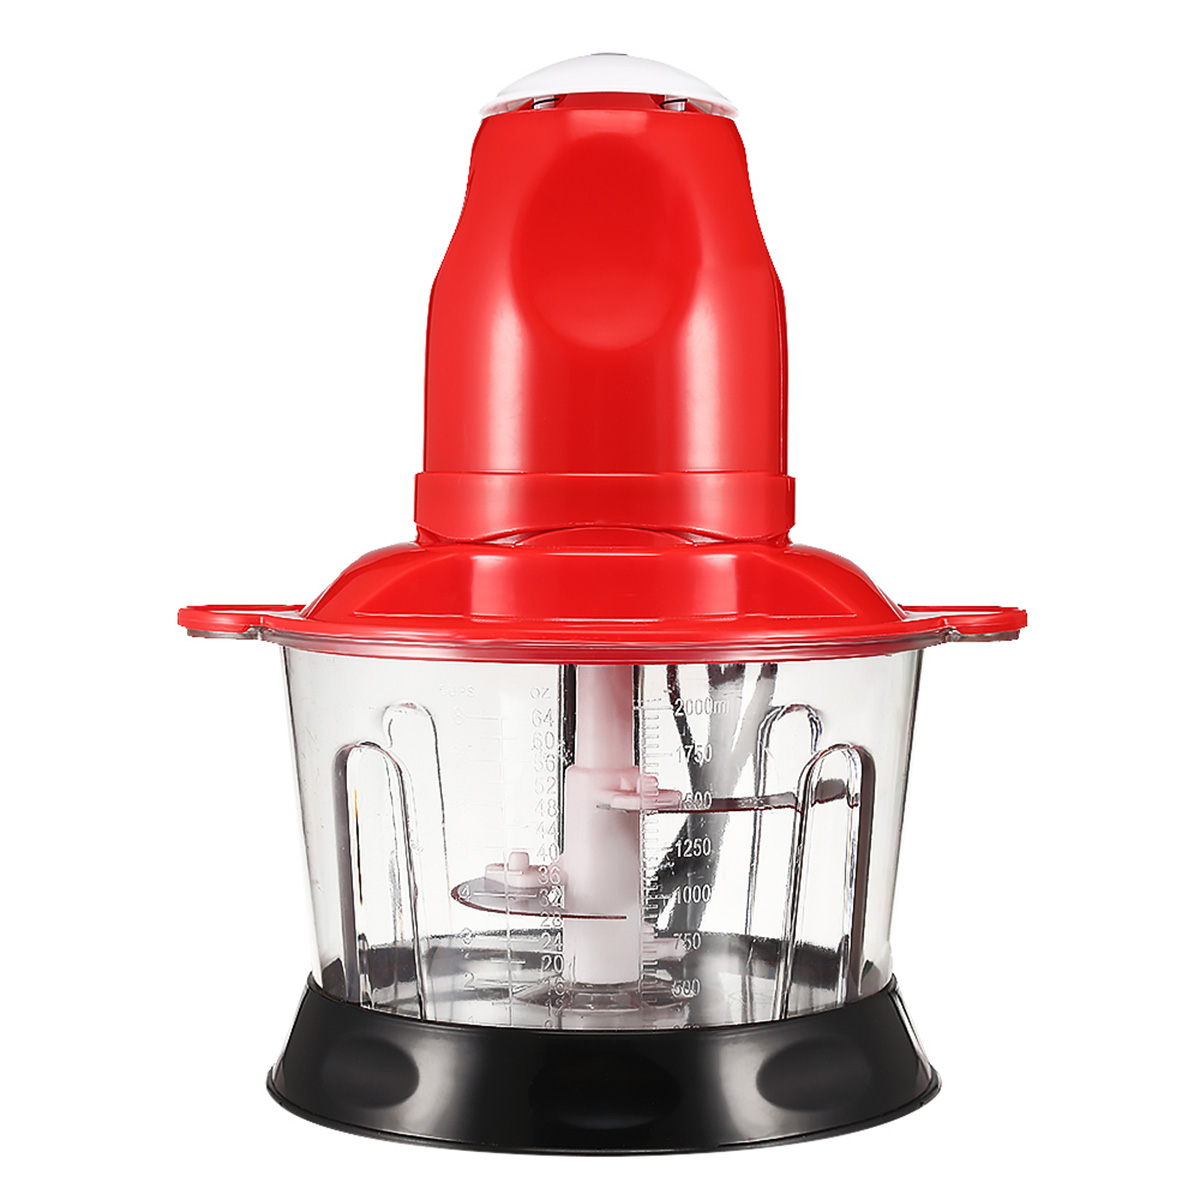 2L Red Multifunctional Household Electric Food Meat Grinder Chopper Blen-der Cutter Kitchen Processor Mincer 200w